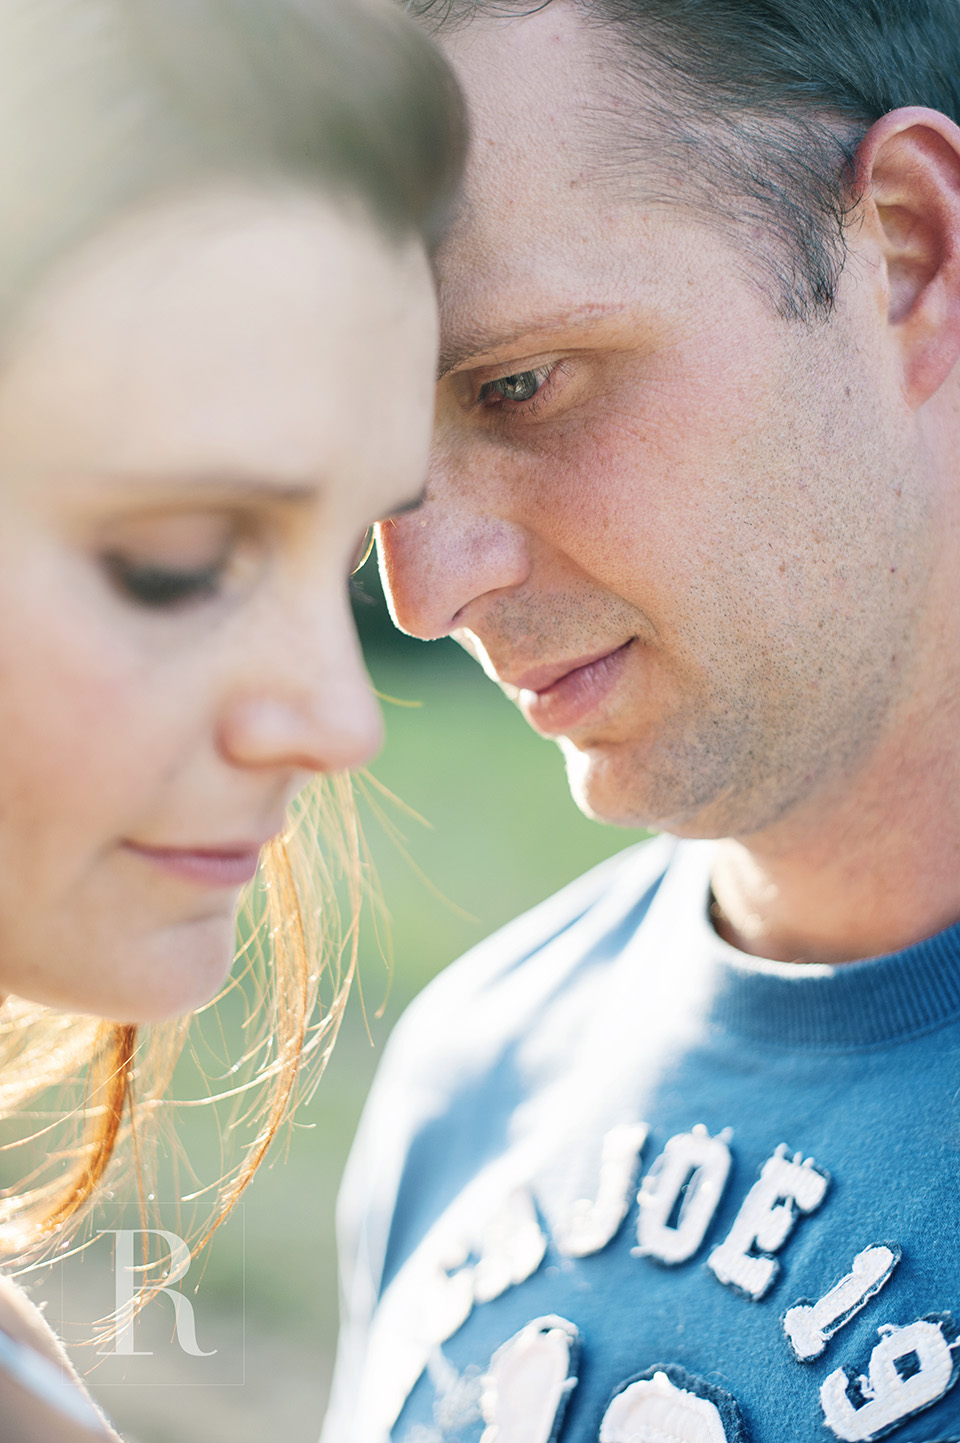 RYAN PARKER PHOTOGRAPHY_ESTEE & BERNARD_ENGAGEMENT SESSION_JOHANNESBURG DSC_1842.jpg